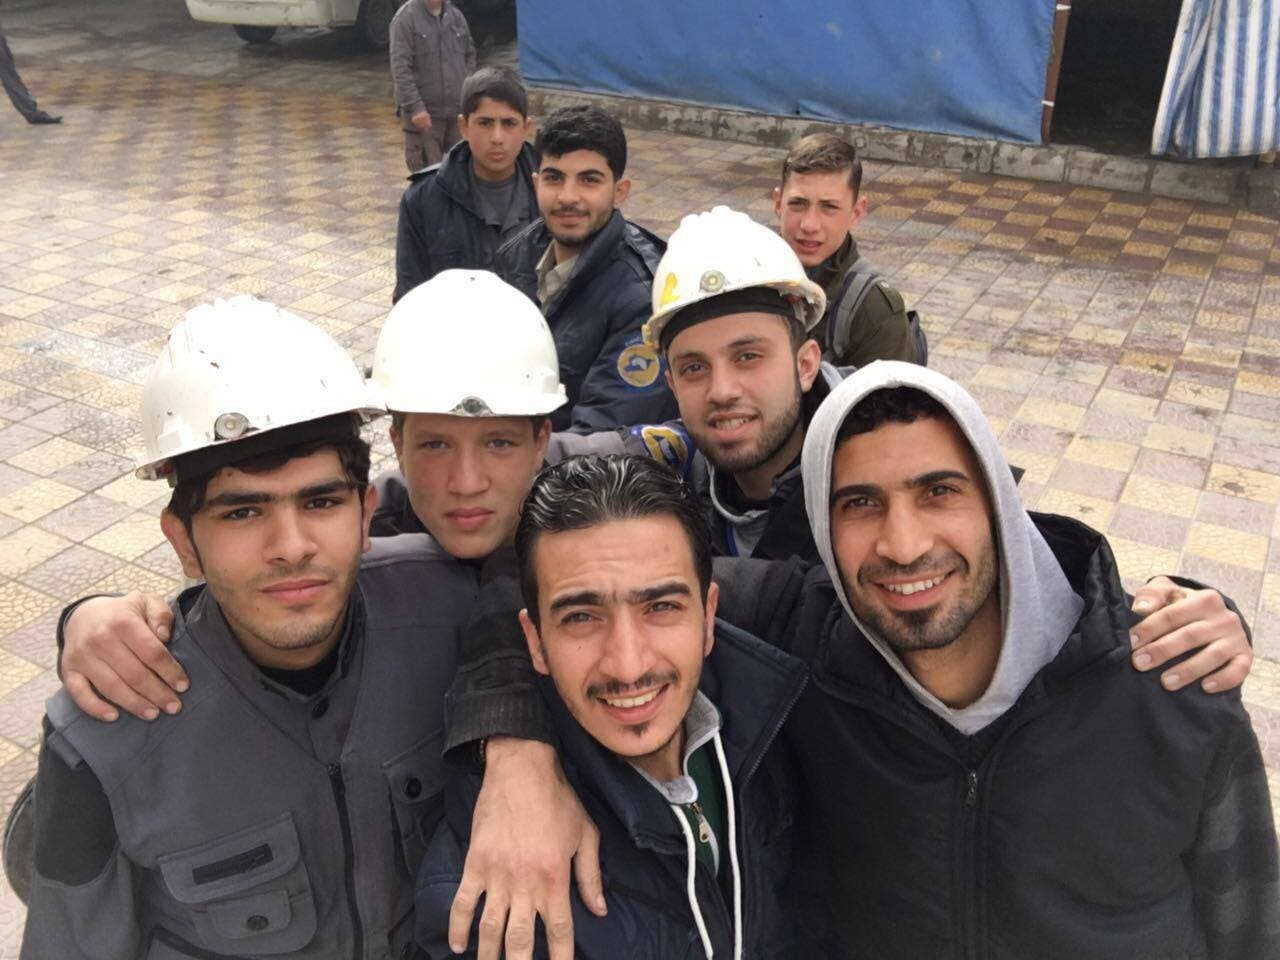 Mahmoud Adam, a worker from the White Helmets attends a party for the orphans in Douma, Syria.